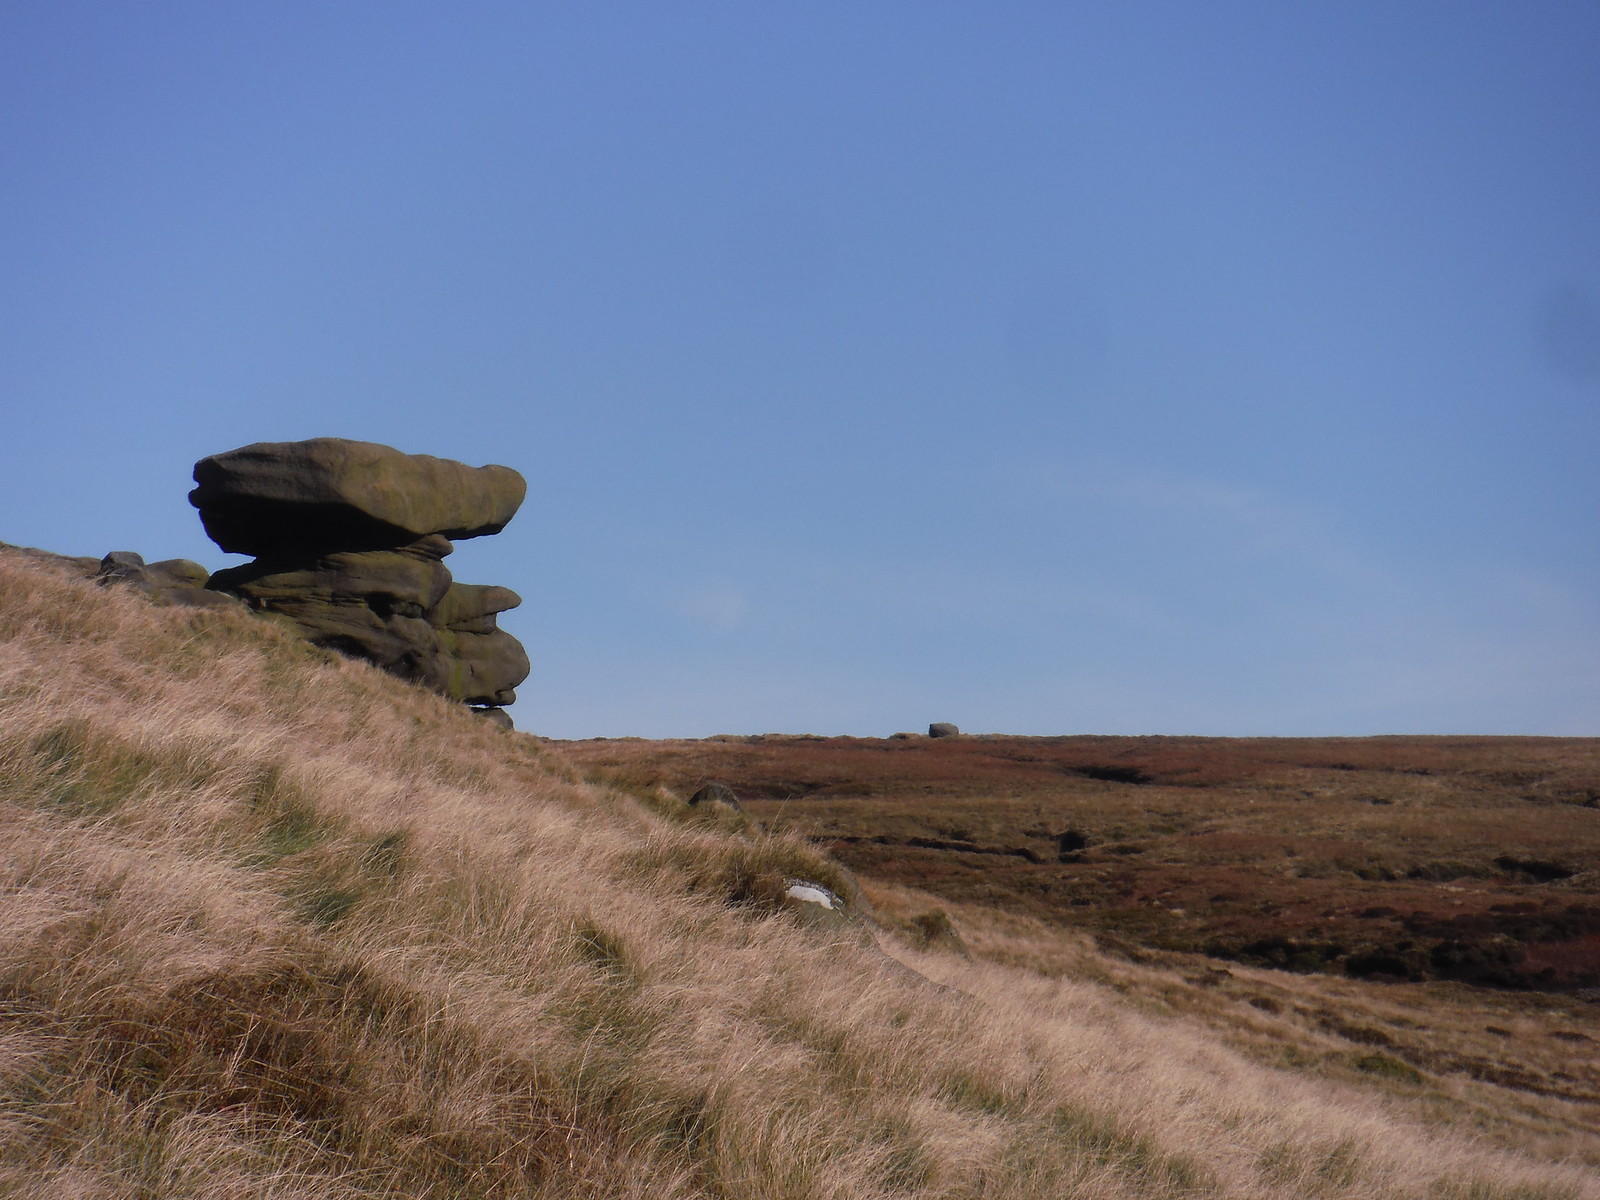 Noe Stool SWC Walk 304 - Kinder Scout Circuit (from Edale)